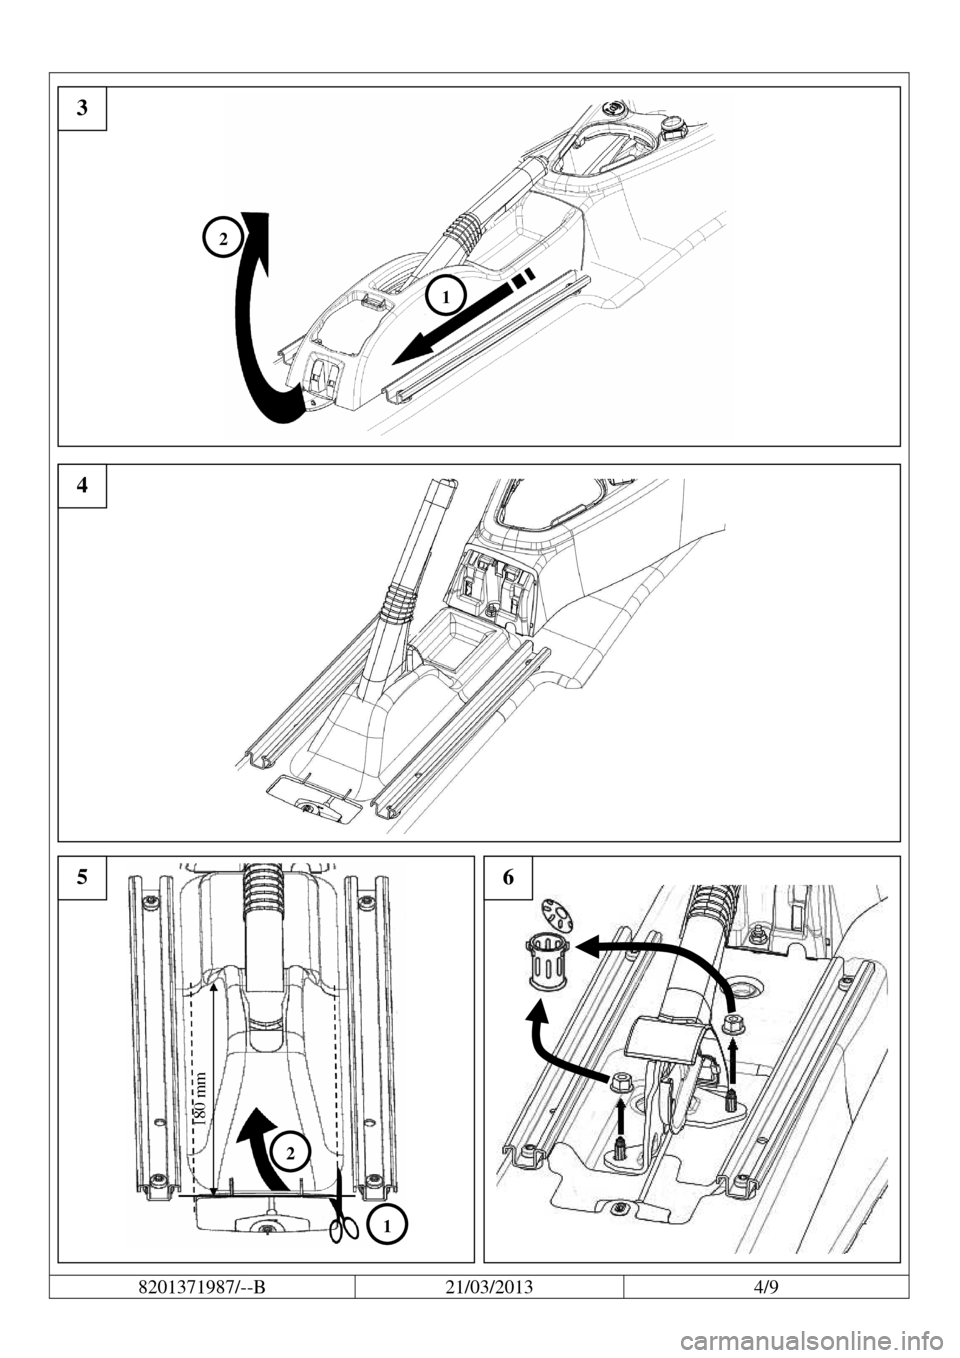 DACIA LOGAN 2013 2.G Fitting Instructions Centre Armrest   8201371987/--B  21/03/2013  4/9          3  4  1  2 5 6  1  2